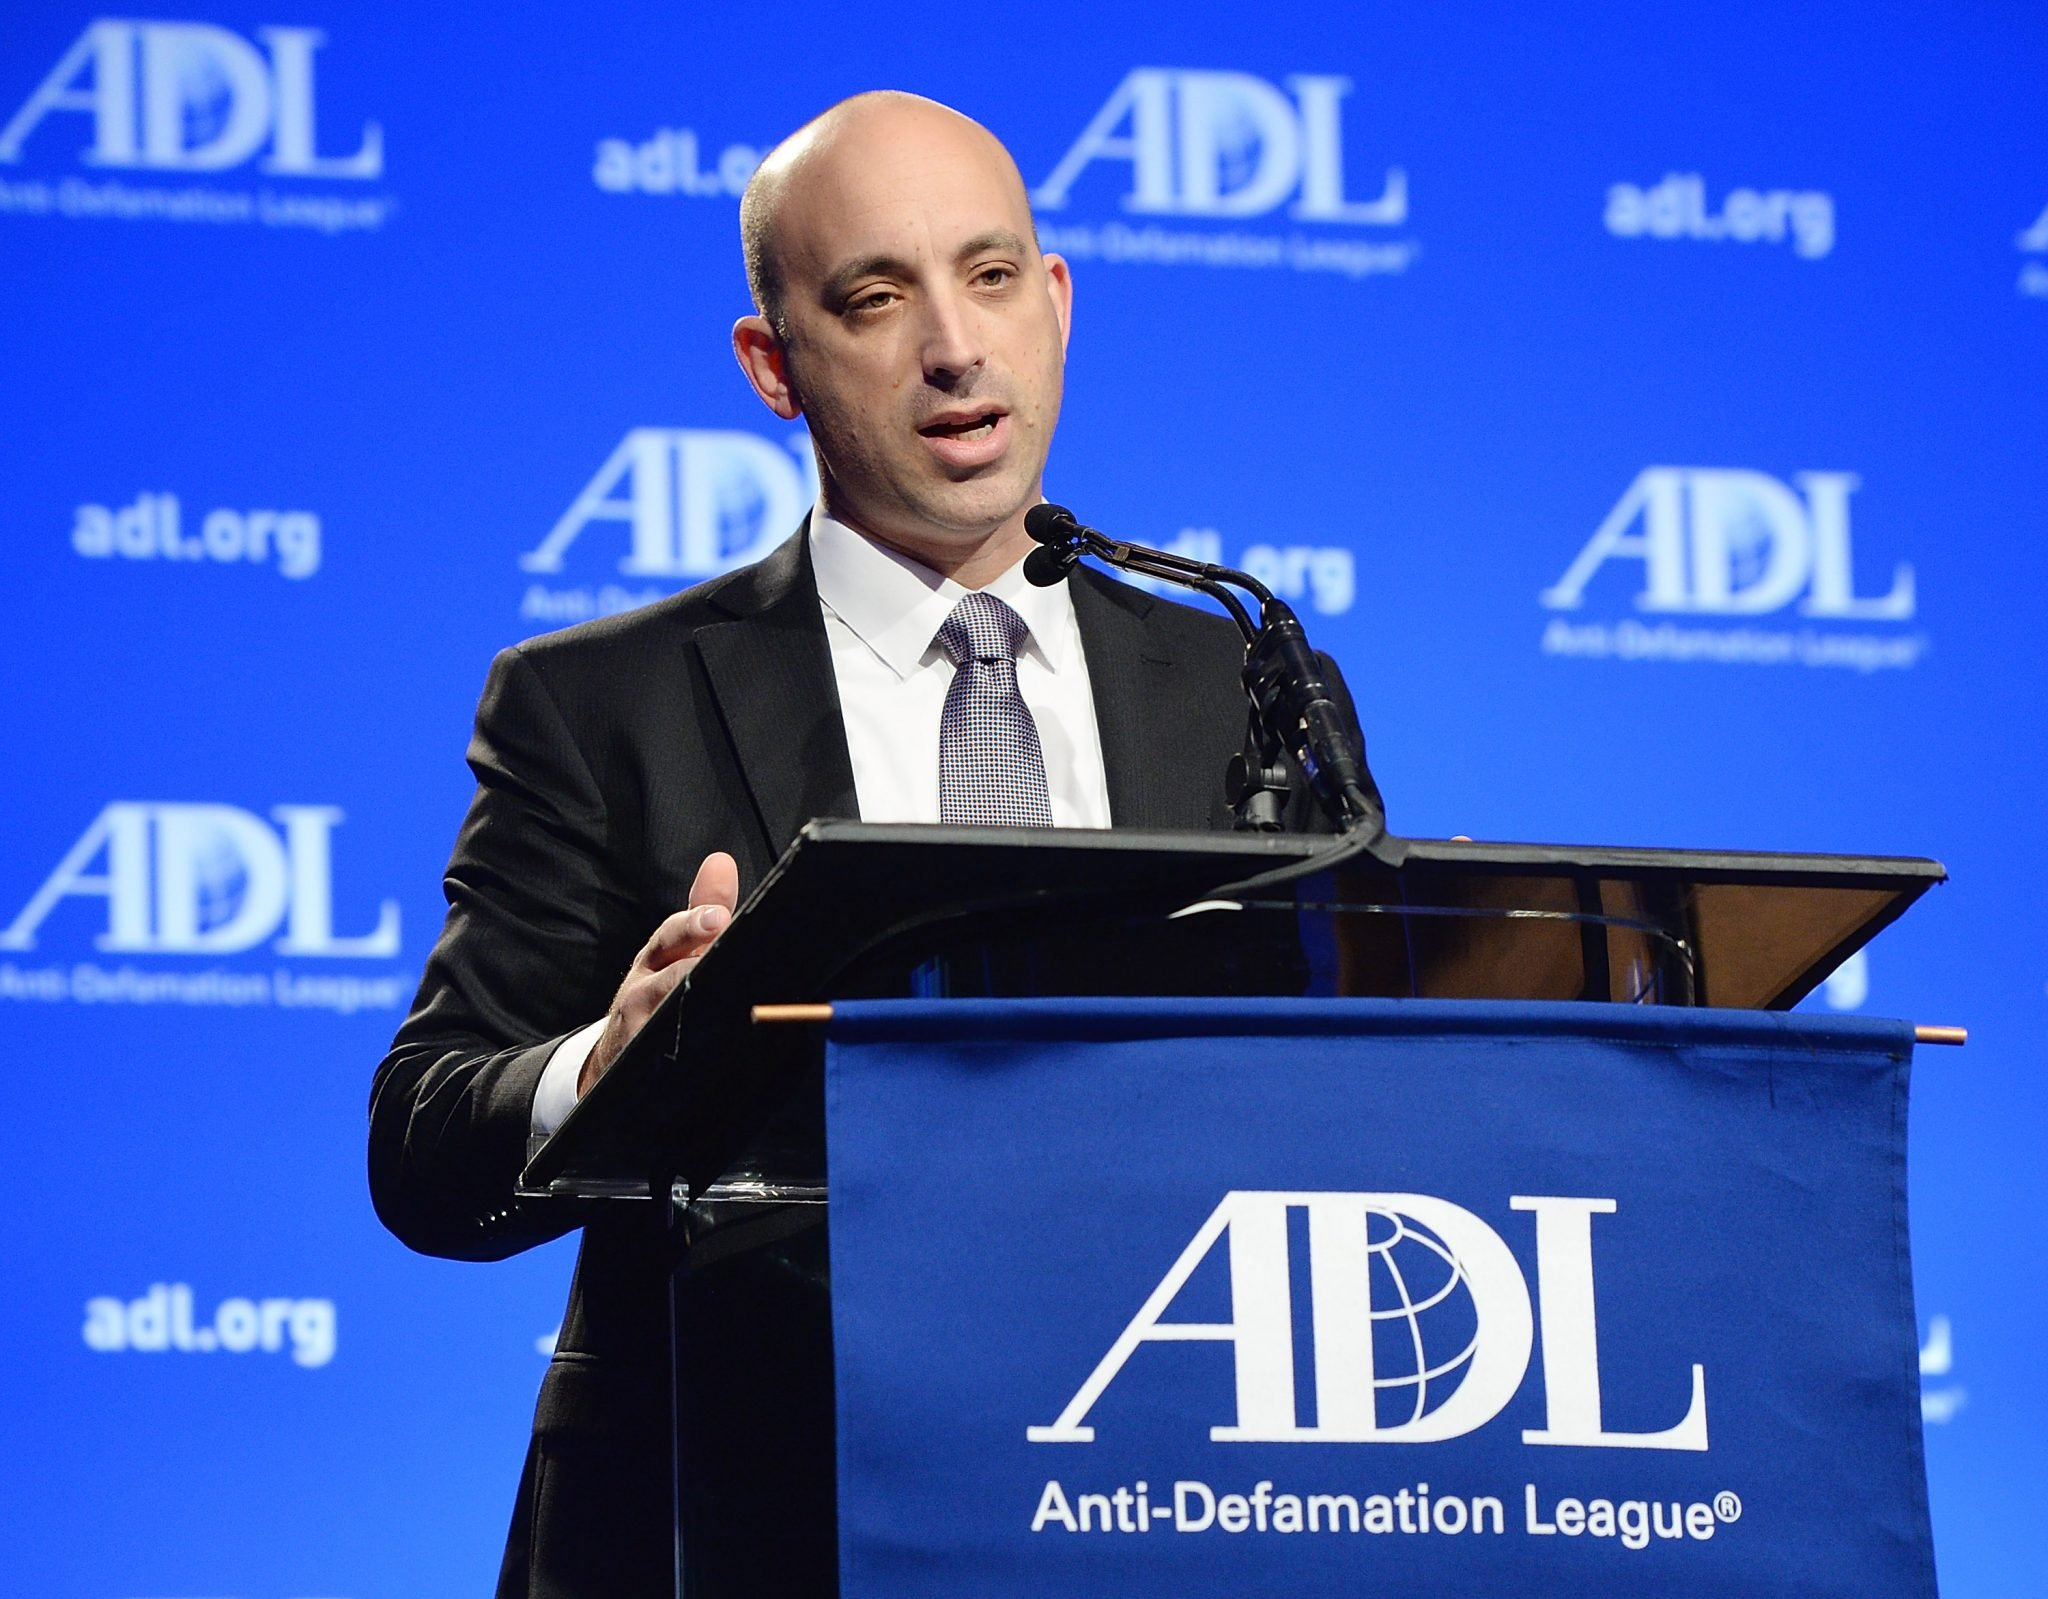 Shocker: The ADL Hides its Own Findings — Betrays Jews to Protect American Muslims